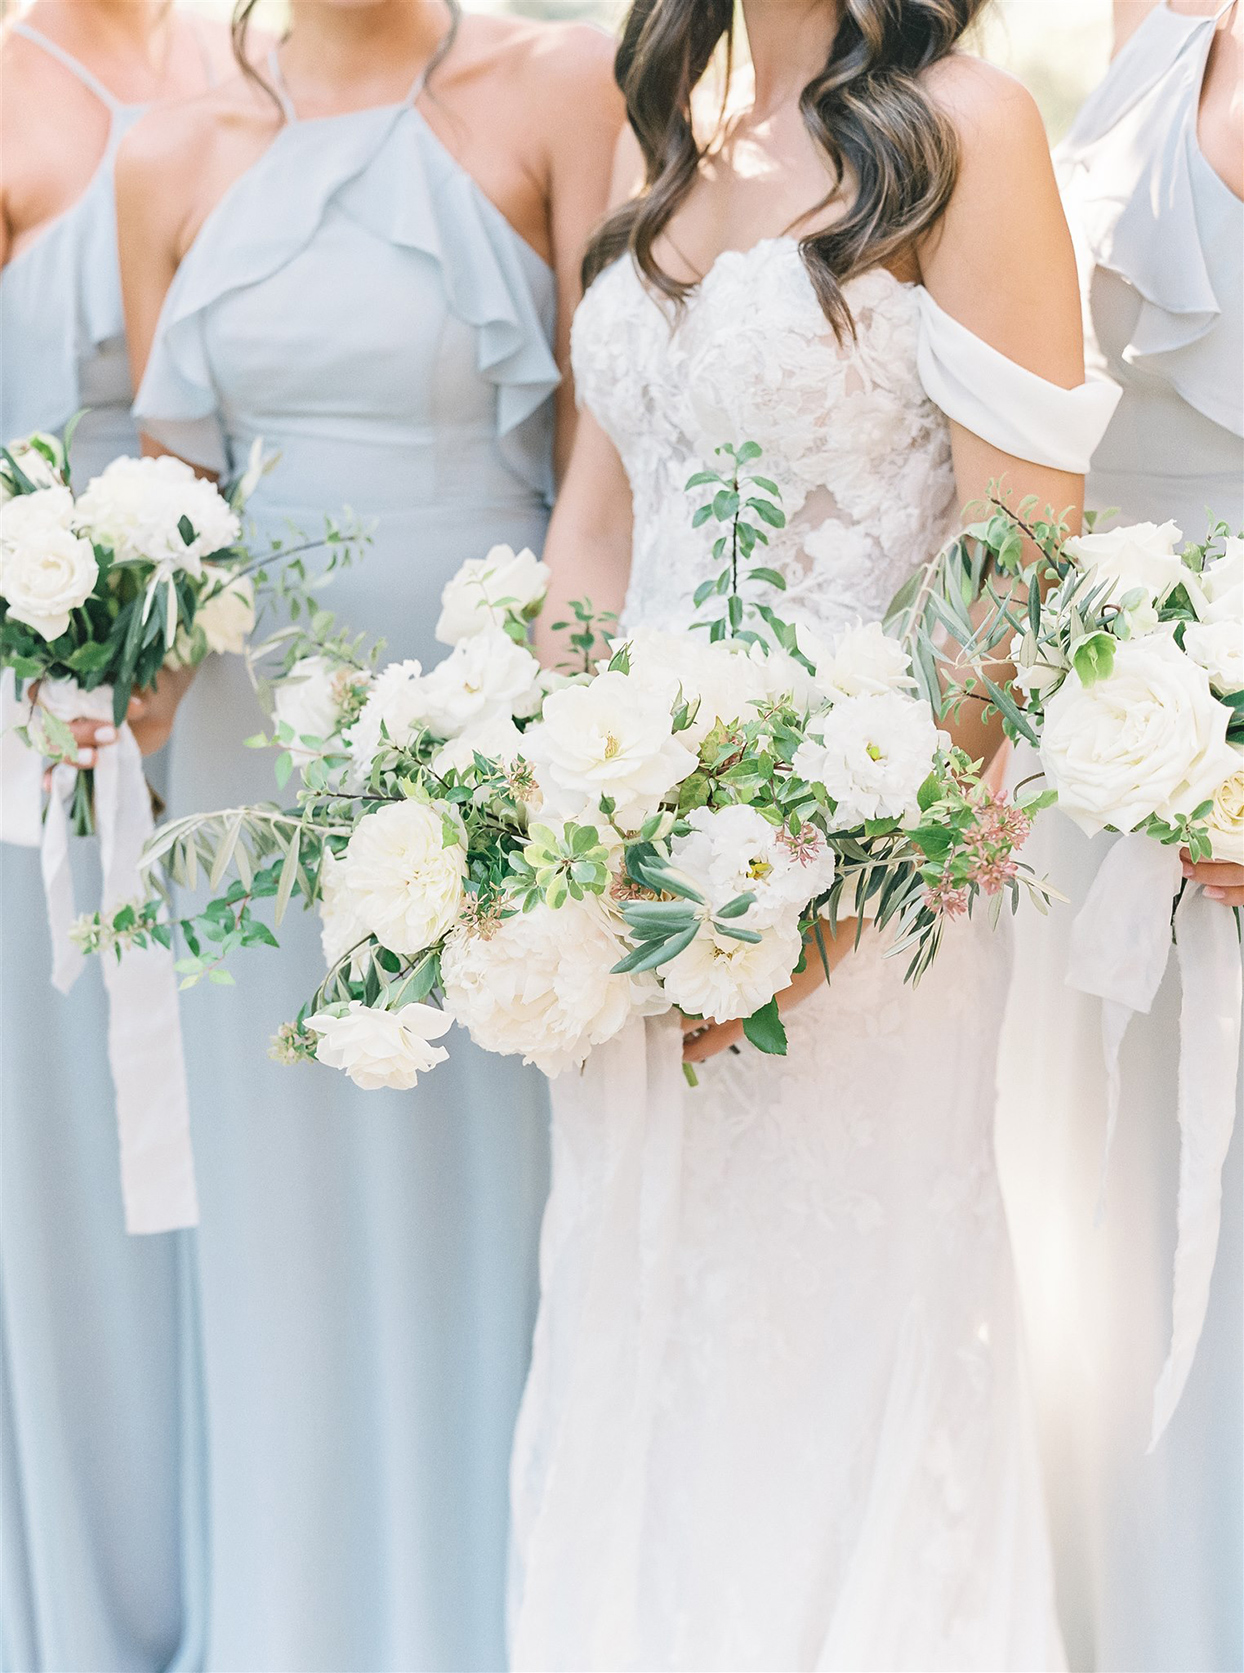 Bride's bouquet with roses, peonies, and olive branches in shades of white, ivory, and green